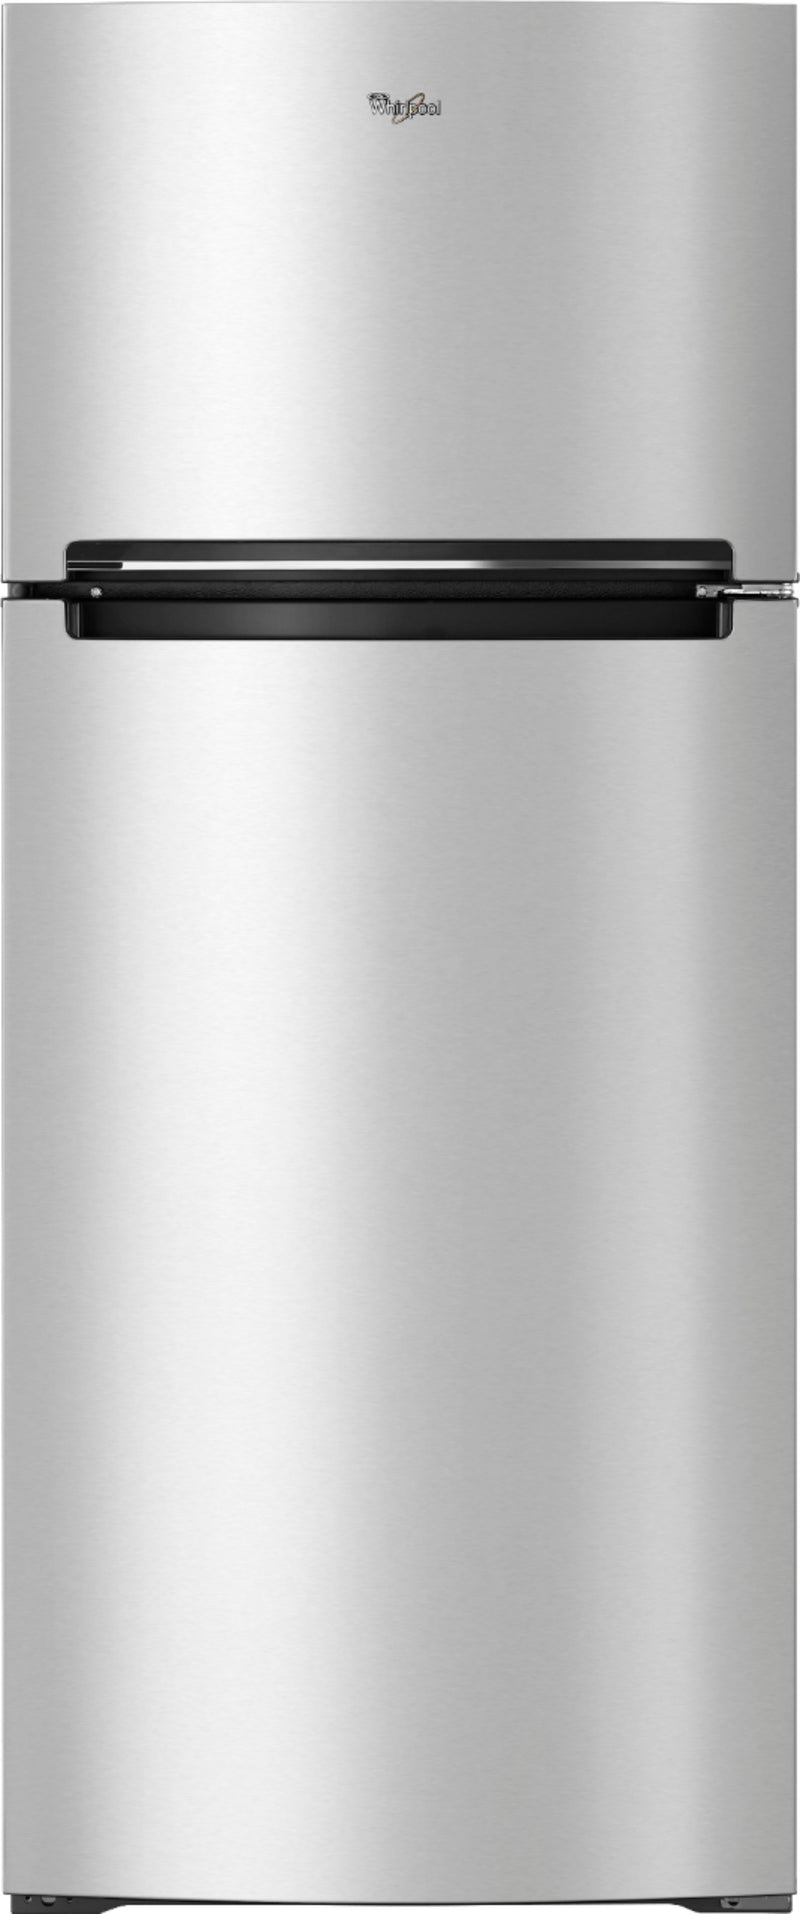 Whirlpool - 17.7 Cu. Ft. Top-Freezer Refrigerator - Monochromatic Stainless Steel